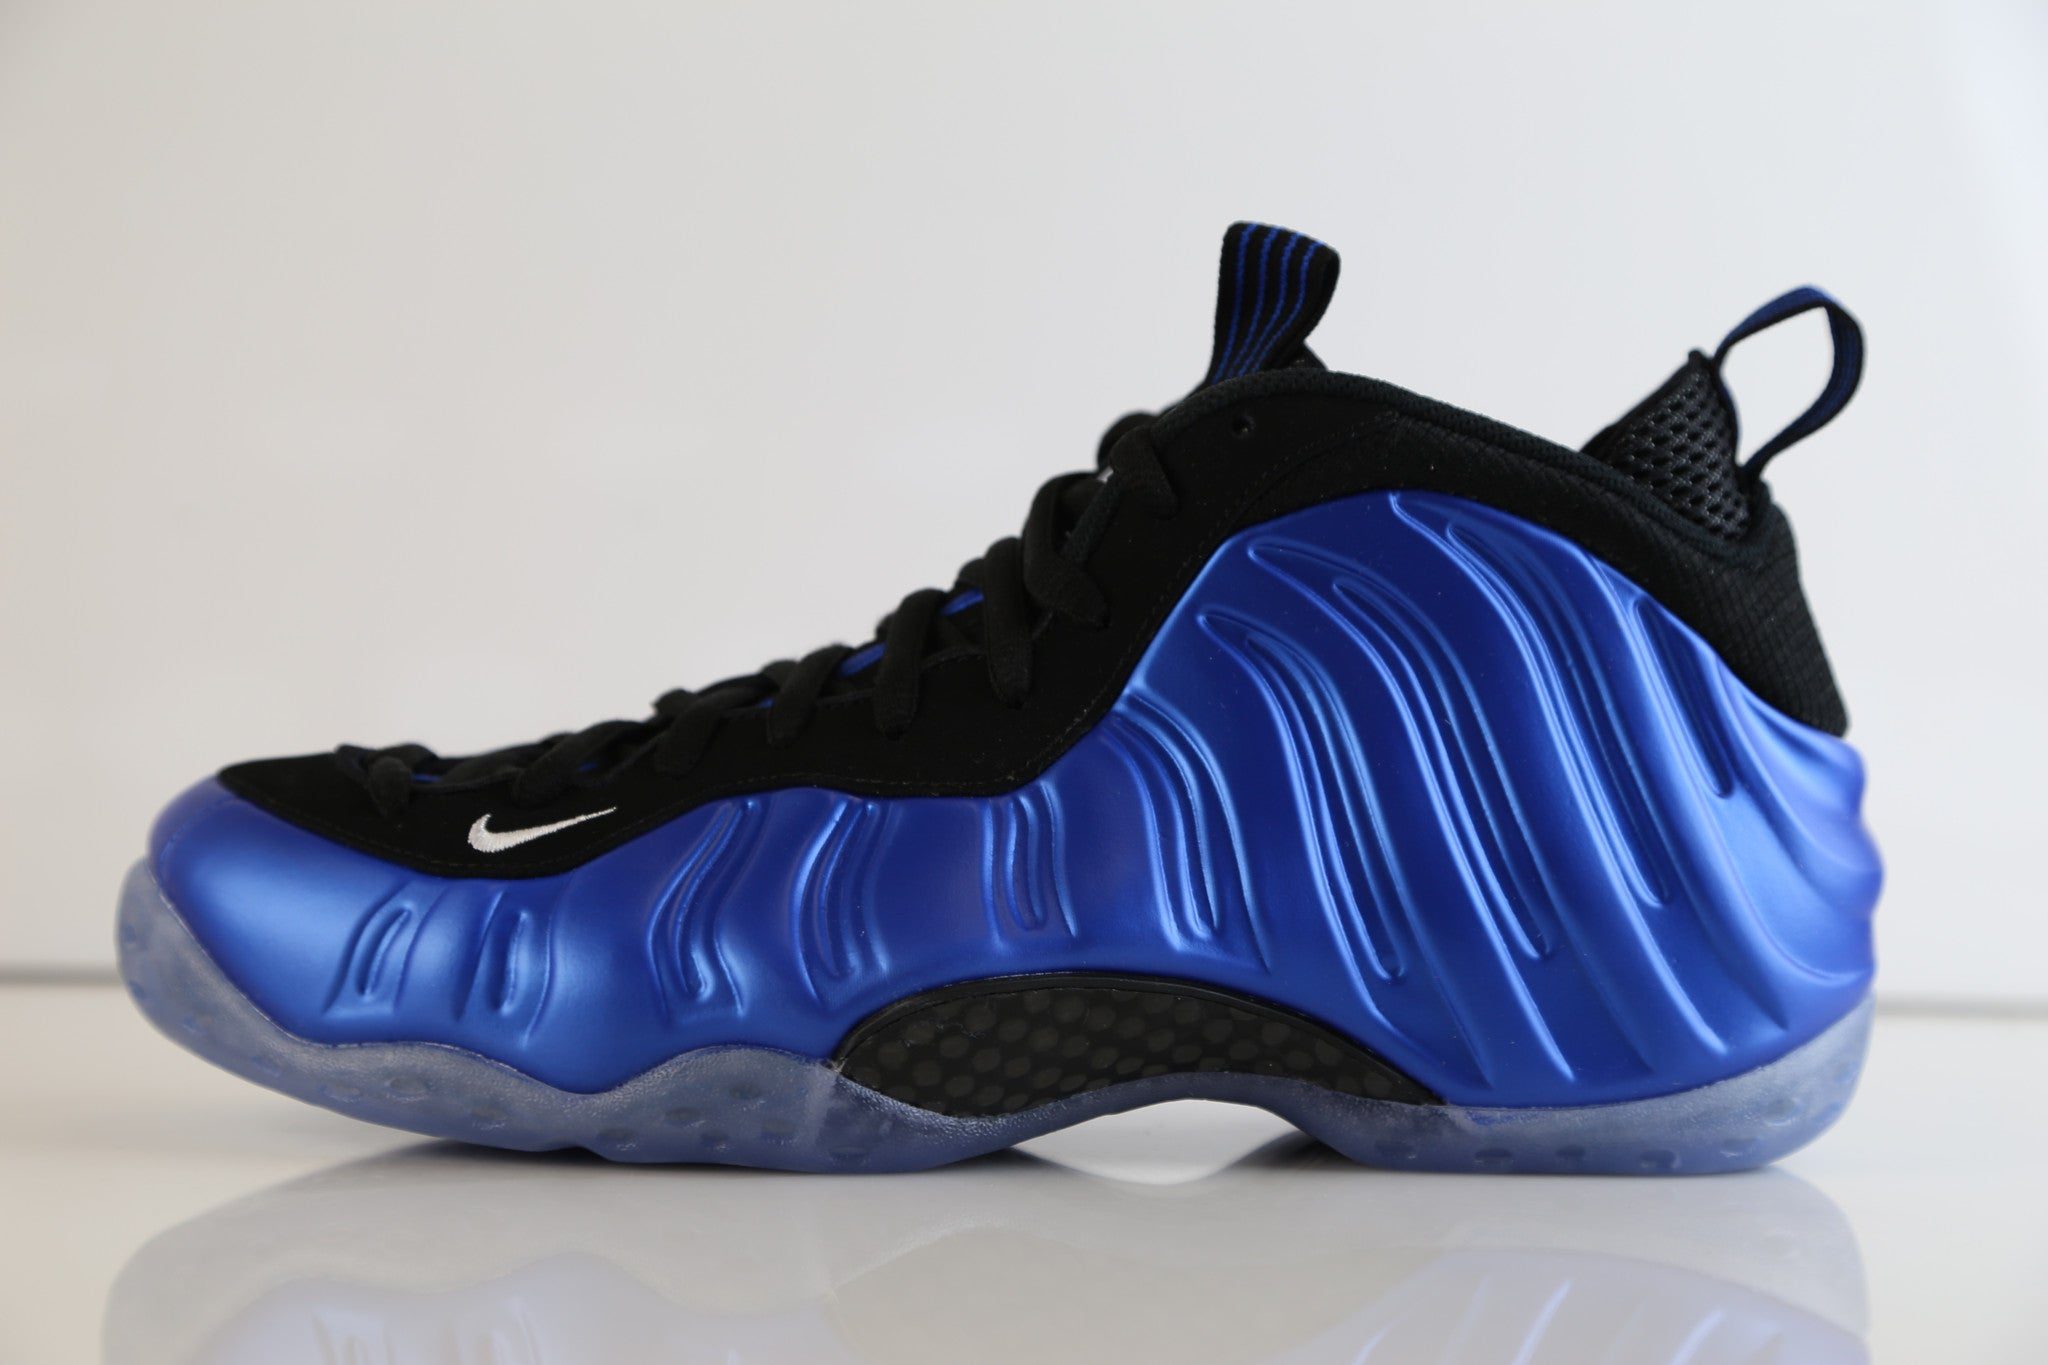 100% authentic 73454 6e7bc Nike Air Foamposite One Royal Blue 2017 Adult and Kids Lil ...